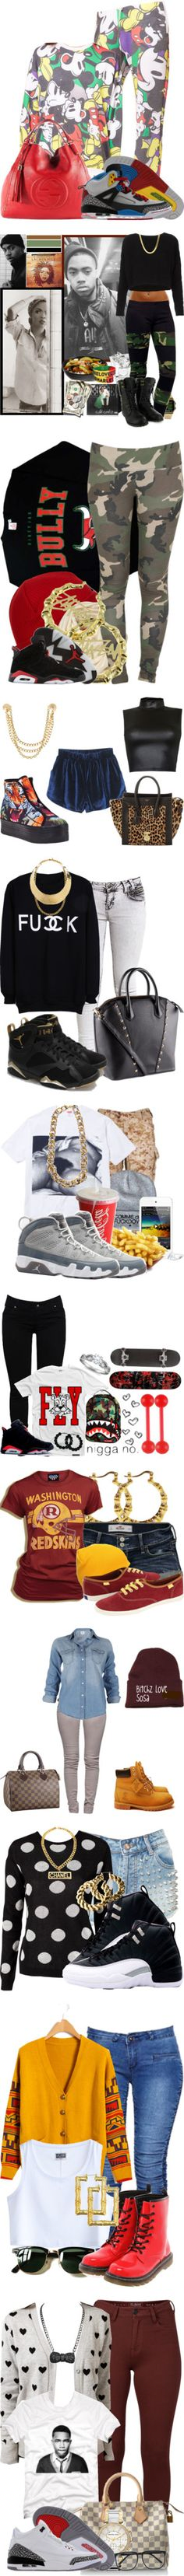 """Trill Lady."" by mrkr-lawson ❤ liked on Polyvore"